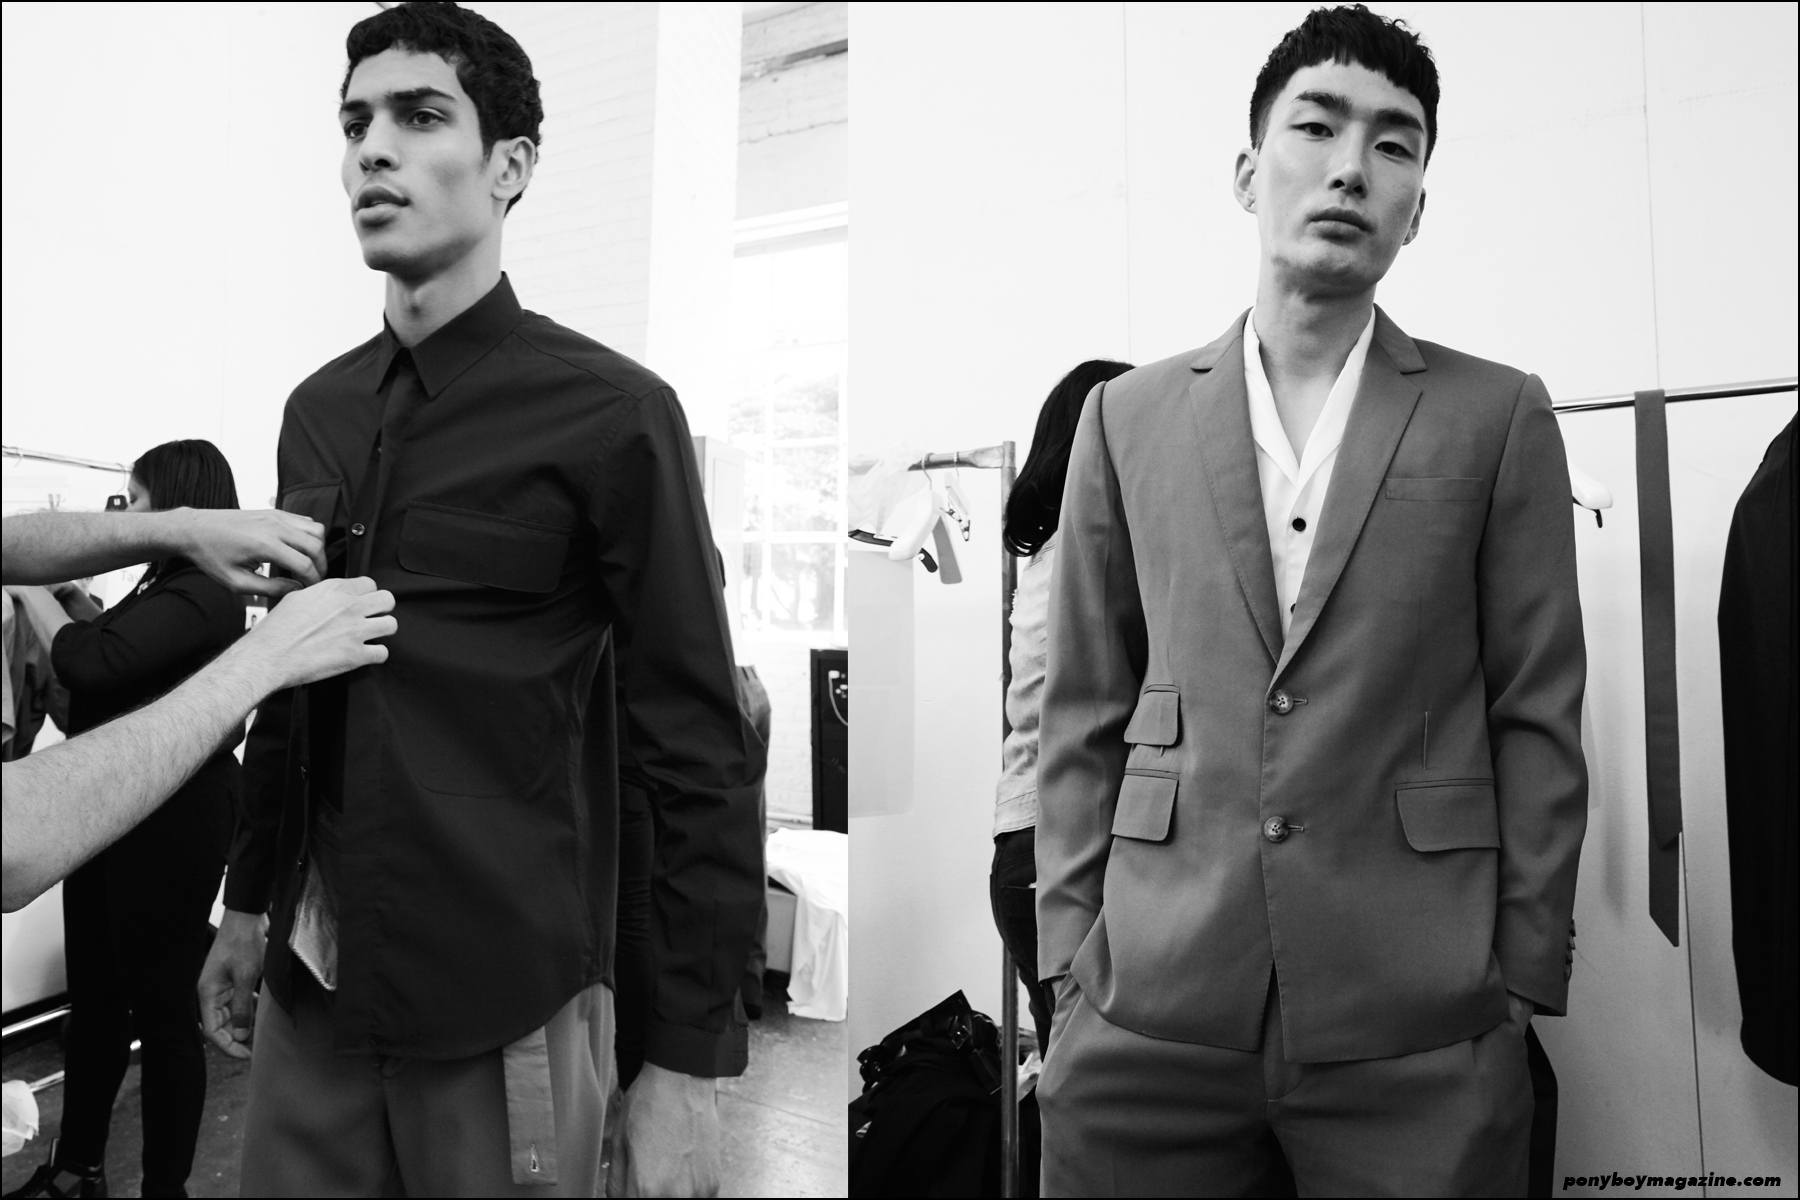 Models Geron McKinley and Noma Han photographed backstage at the Carlos Campos Spring/Summer 2016 menswear presentation at Industria Studios New York. Photography by Alexander Thompson for Ponyboy magazine NY.